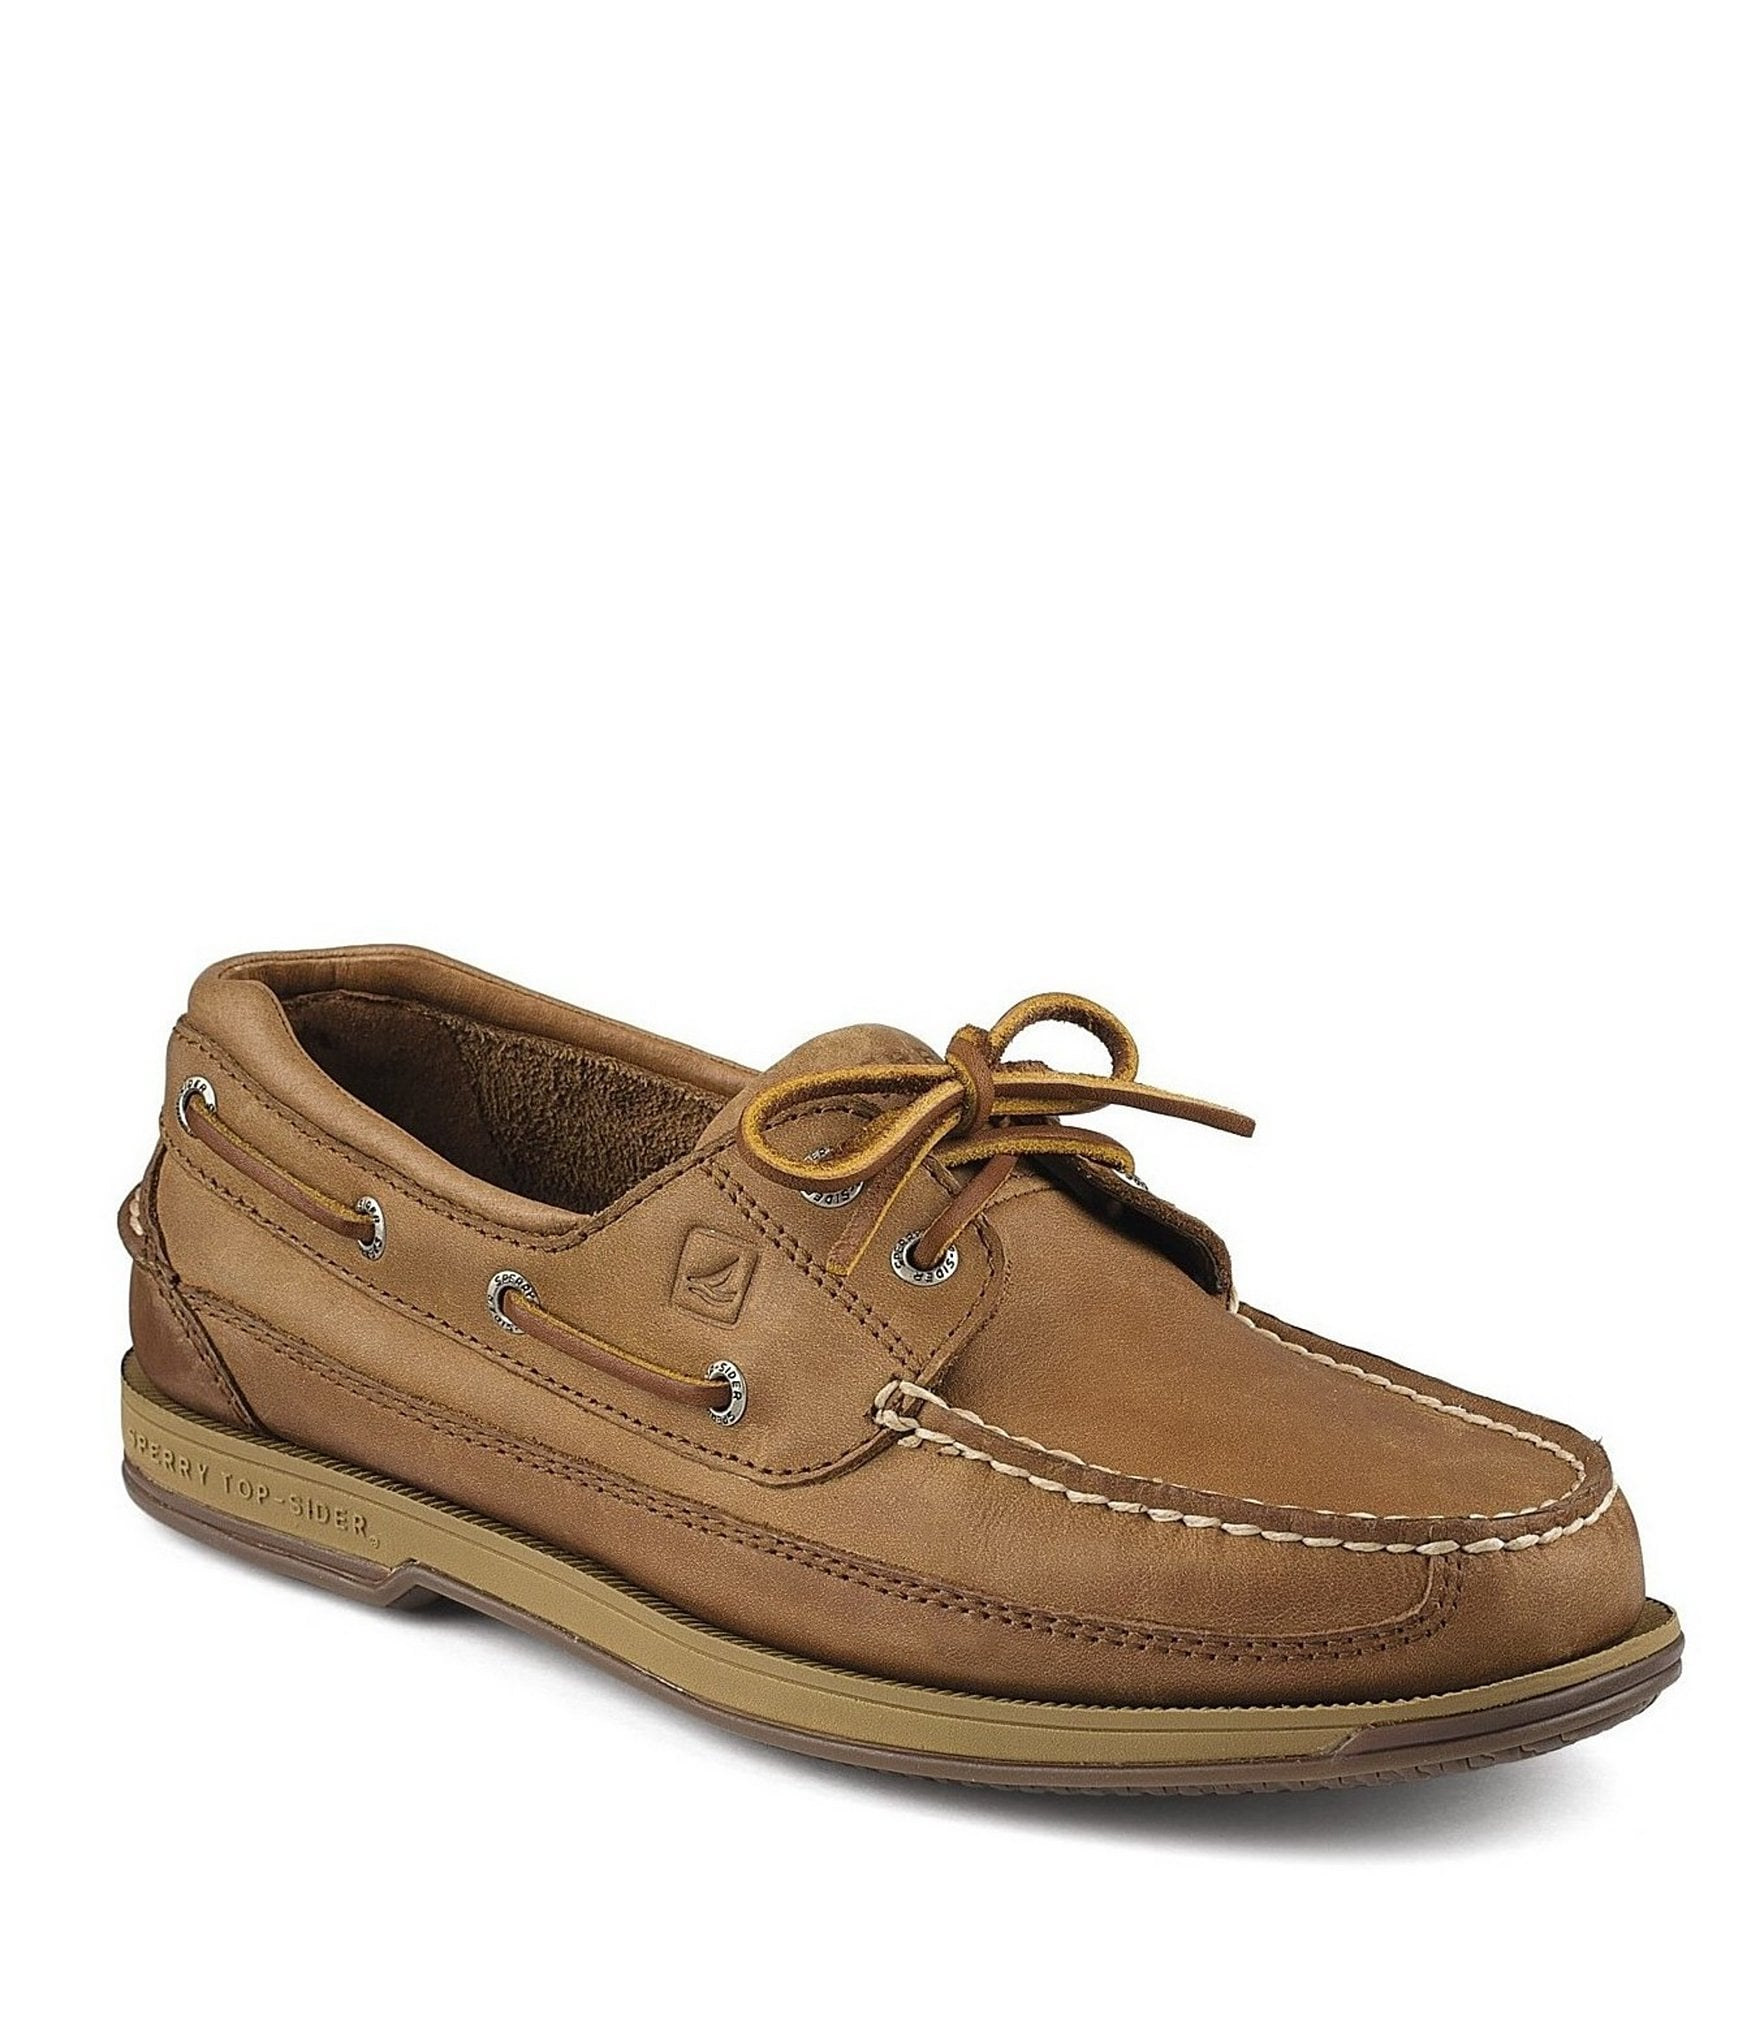 Sperry Mens Boat Shoes Clearance